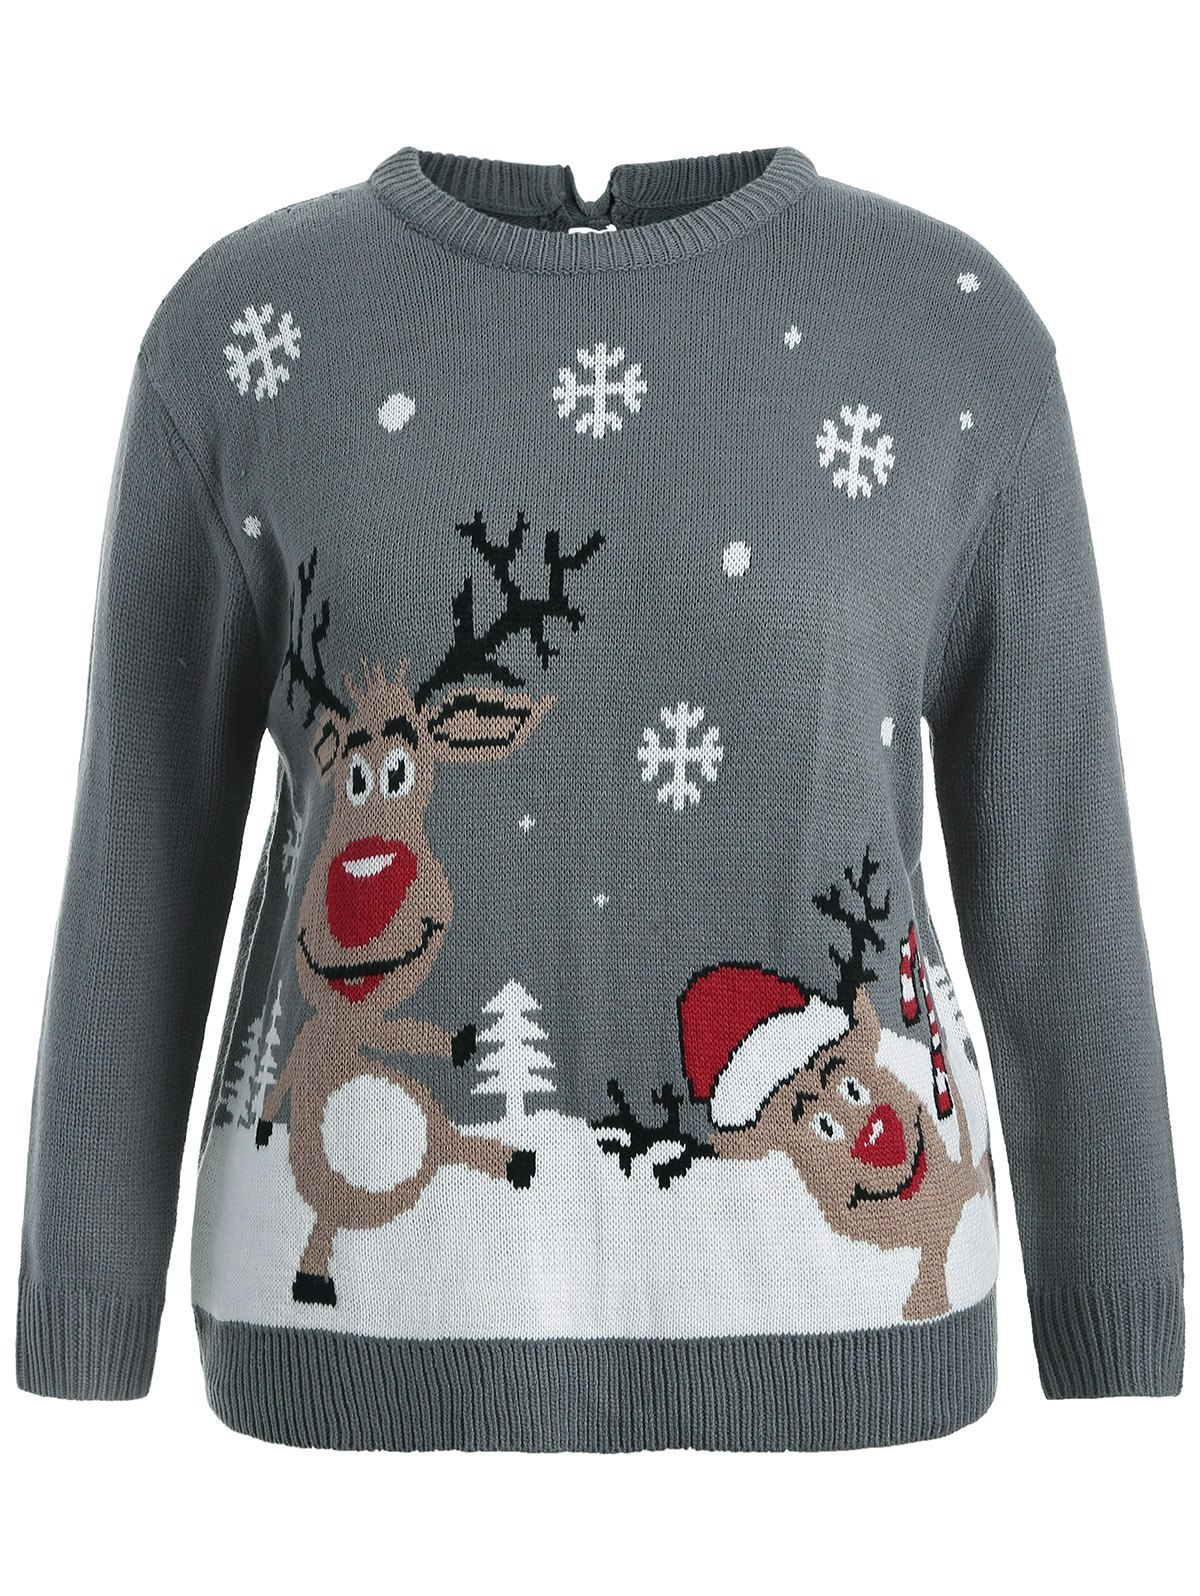 Back Bowknot Snowflake Cartoon Pattern Christmas Sweater christmas pullover sweater with cartoon ornamentation pattern